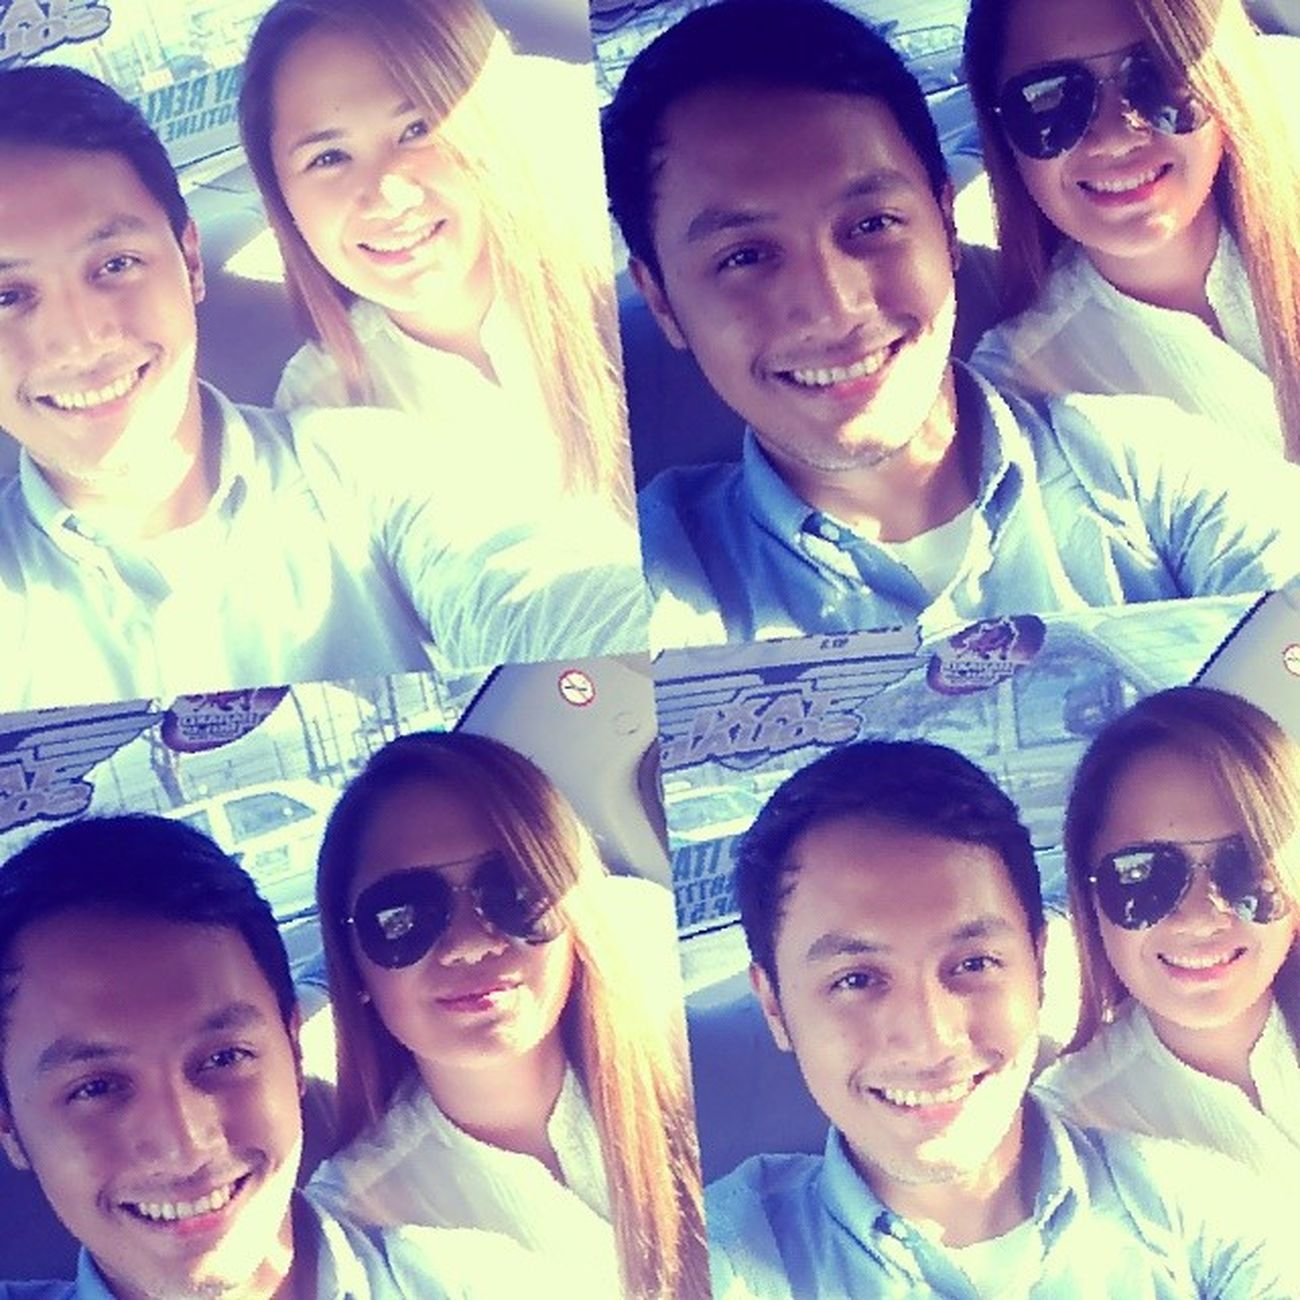 Selfie while traffic. CareerJh Clingy IABFbatch2014